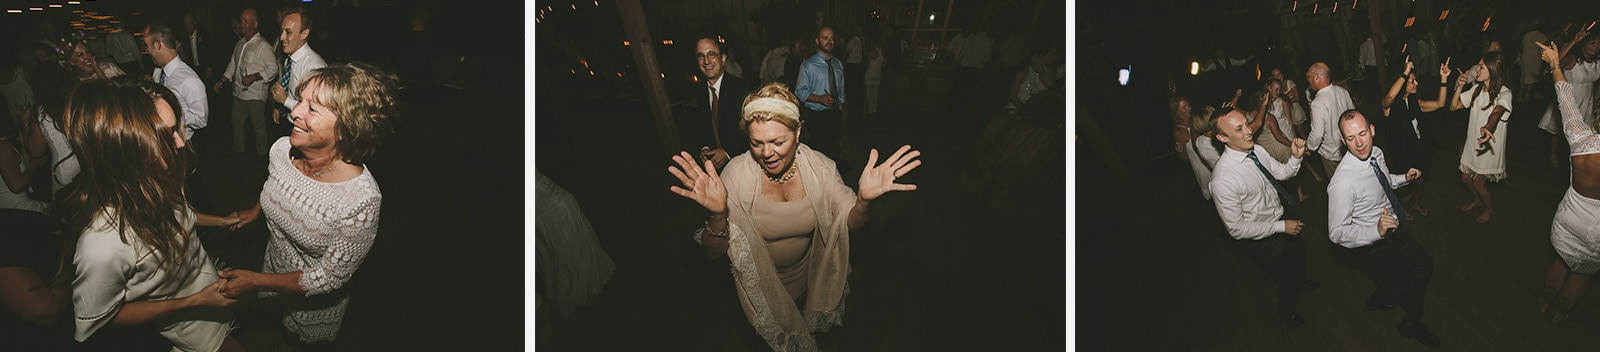 Santa_Lucia_Preserve_Wedding_073